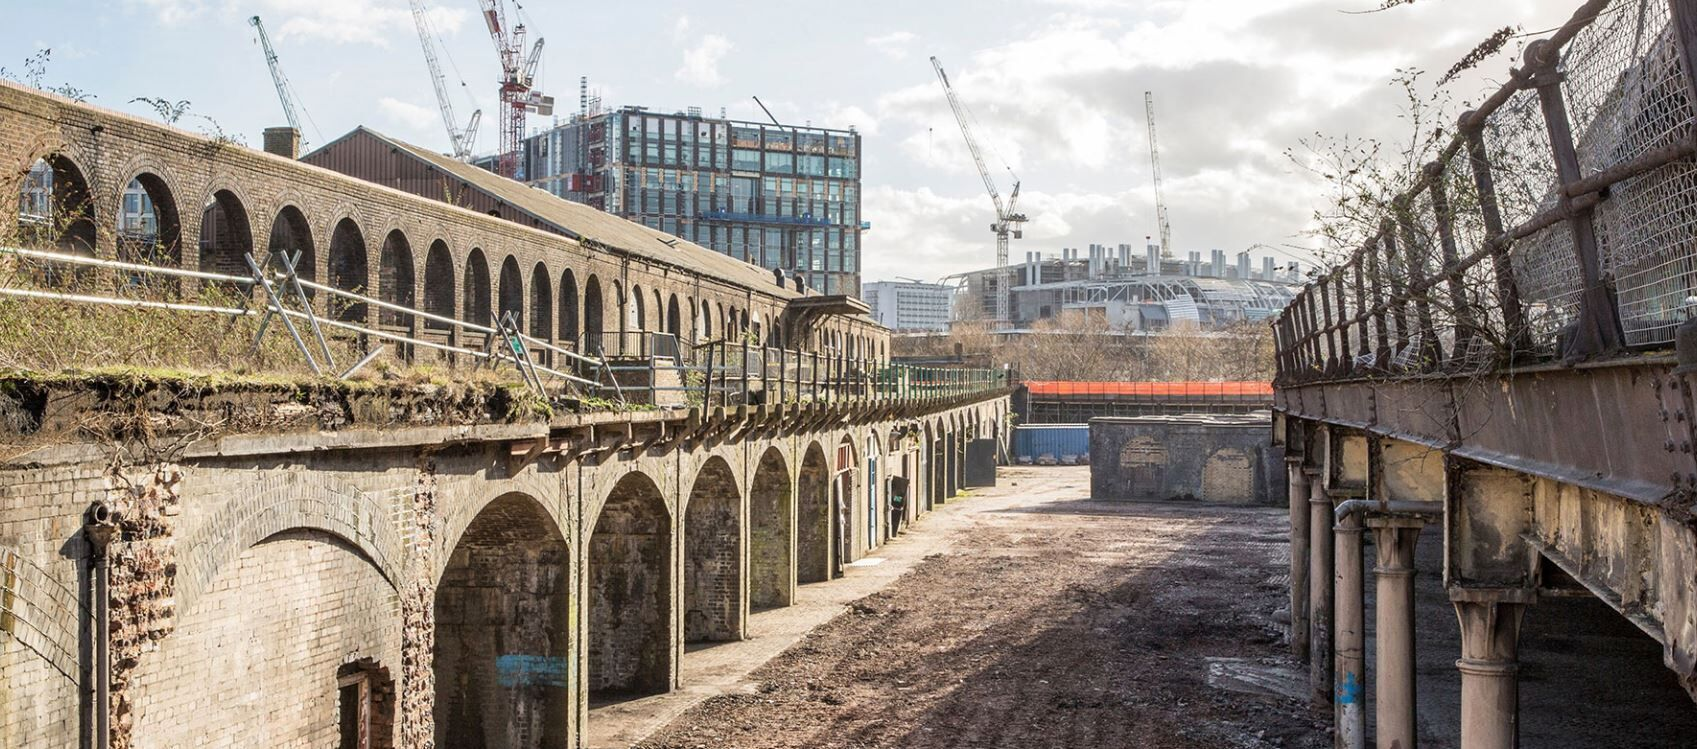 Property Coal Drops Yard London 15 e71bc151612f94b132eaf964d5782c72 - Coal Drops Yard history in photos